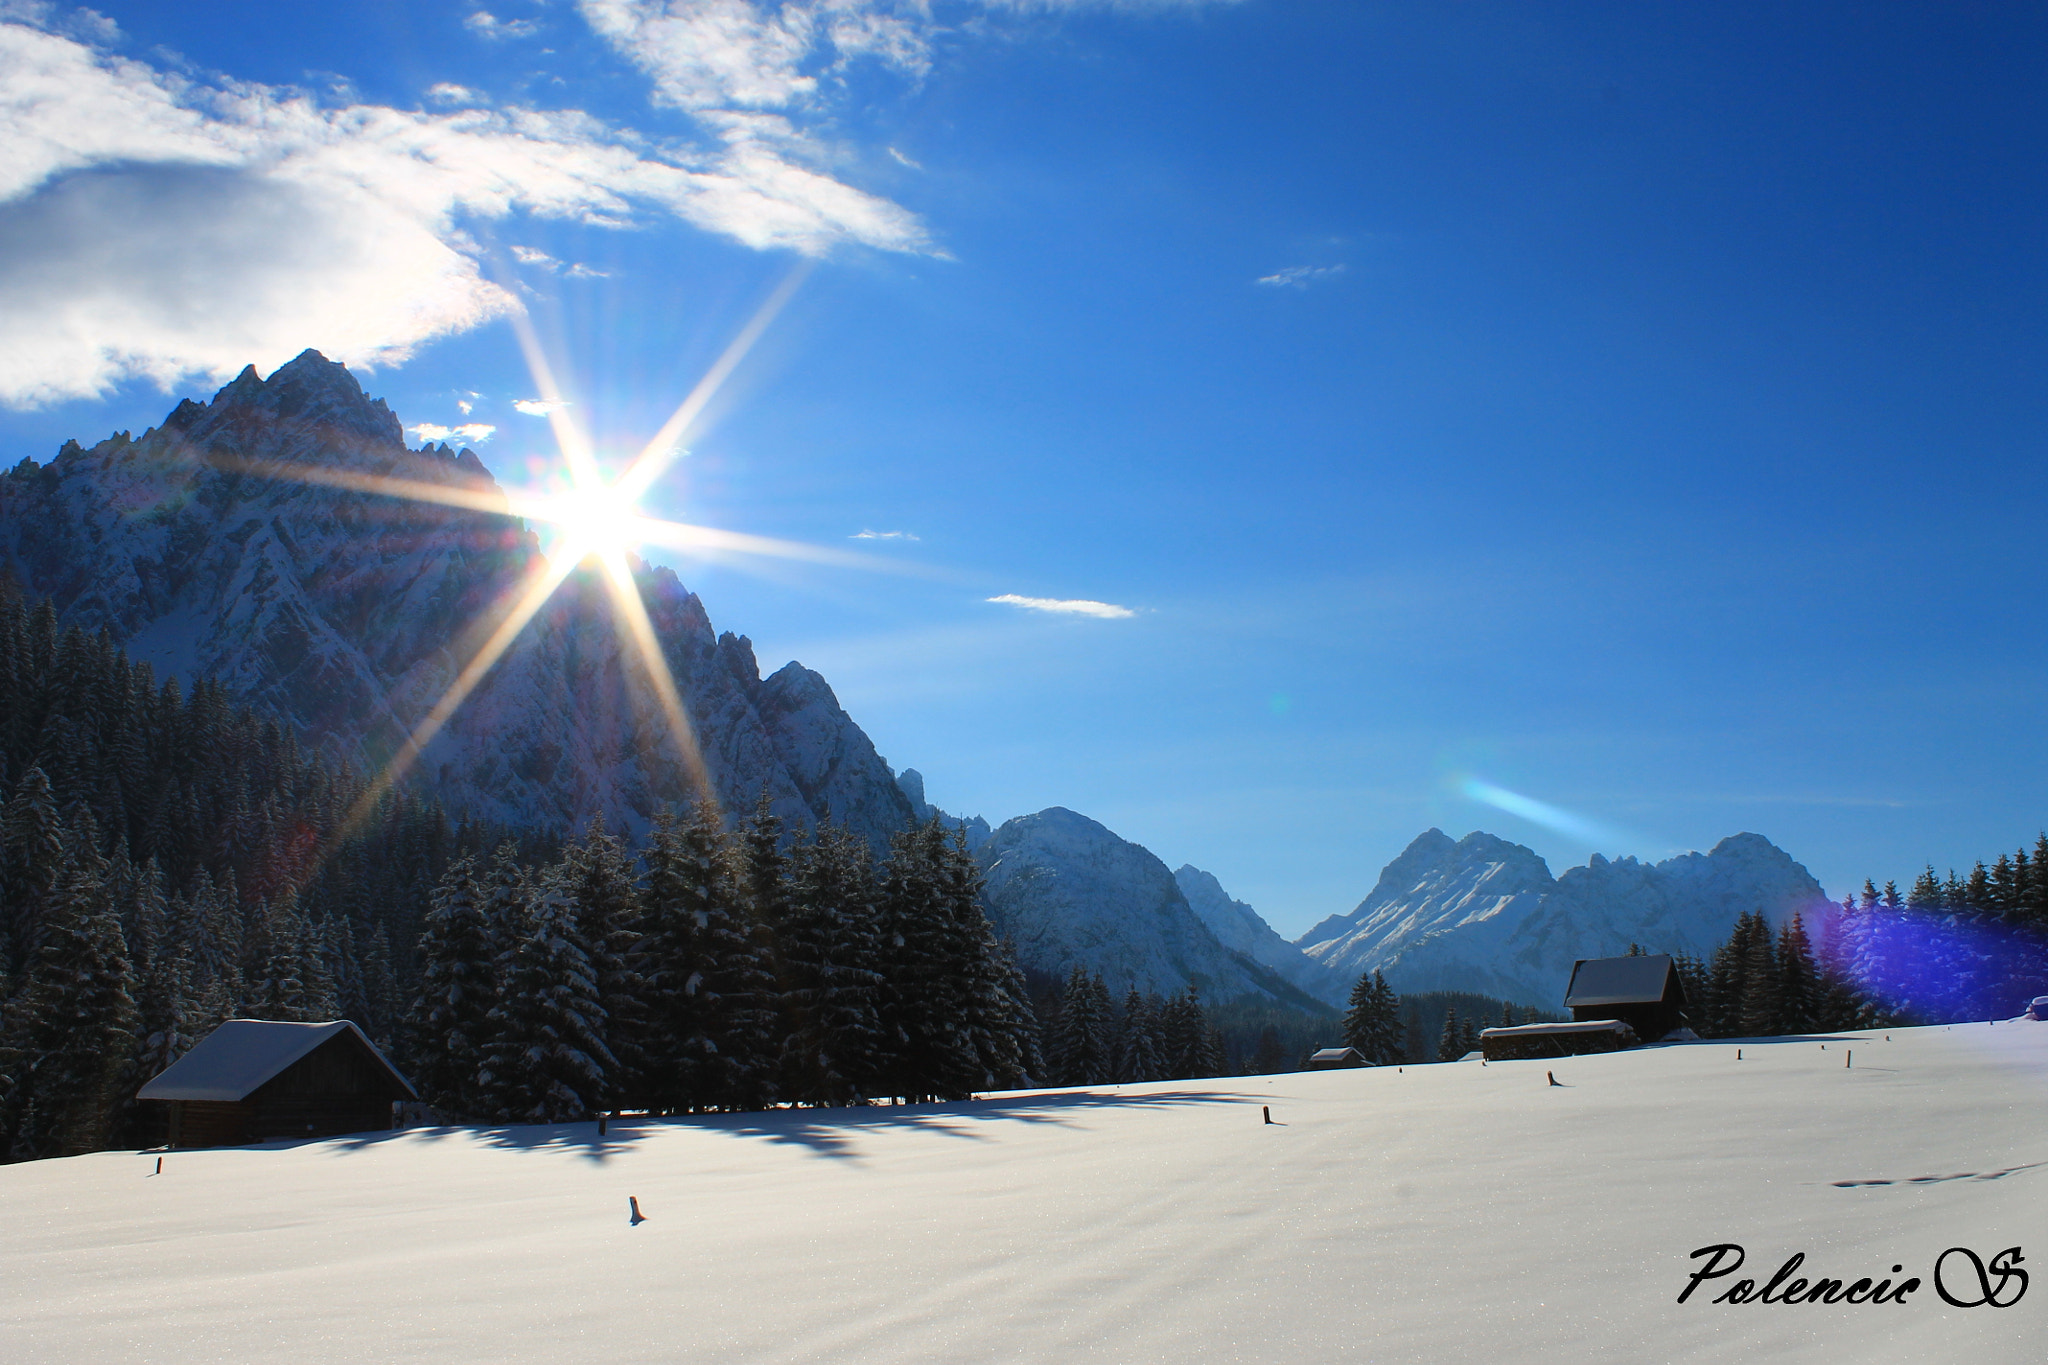 Photograph Snow, sun and tranqulity by Silvia Polencic on 500px